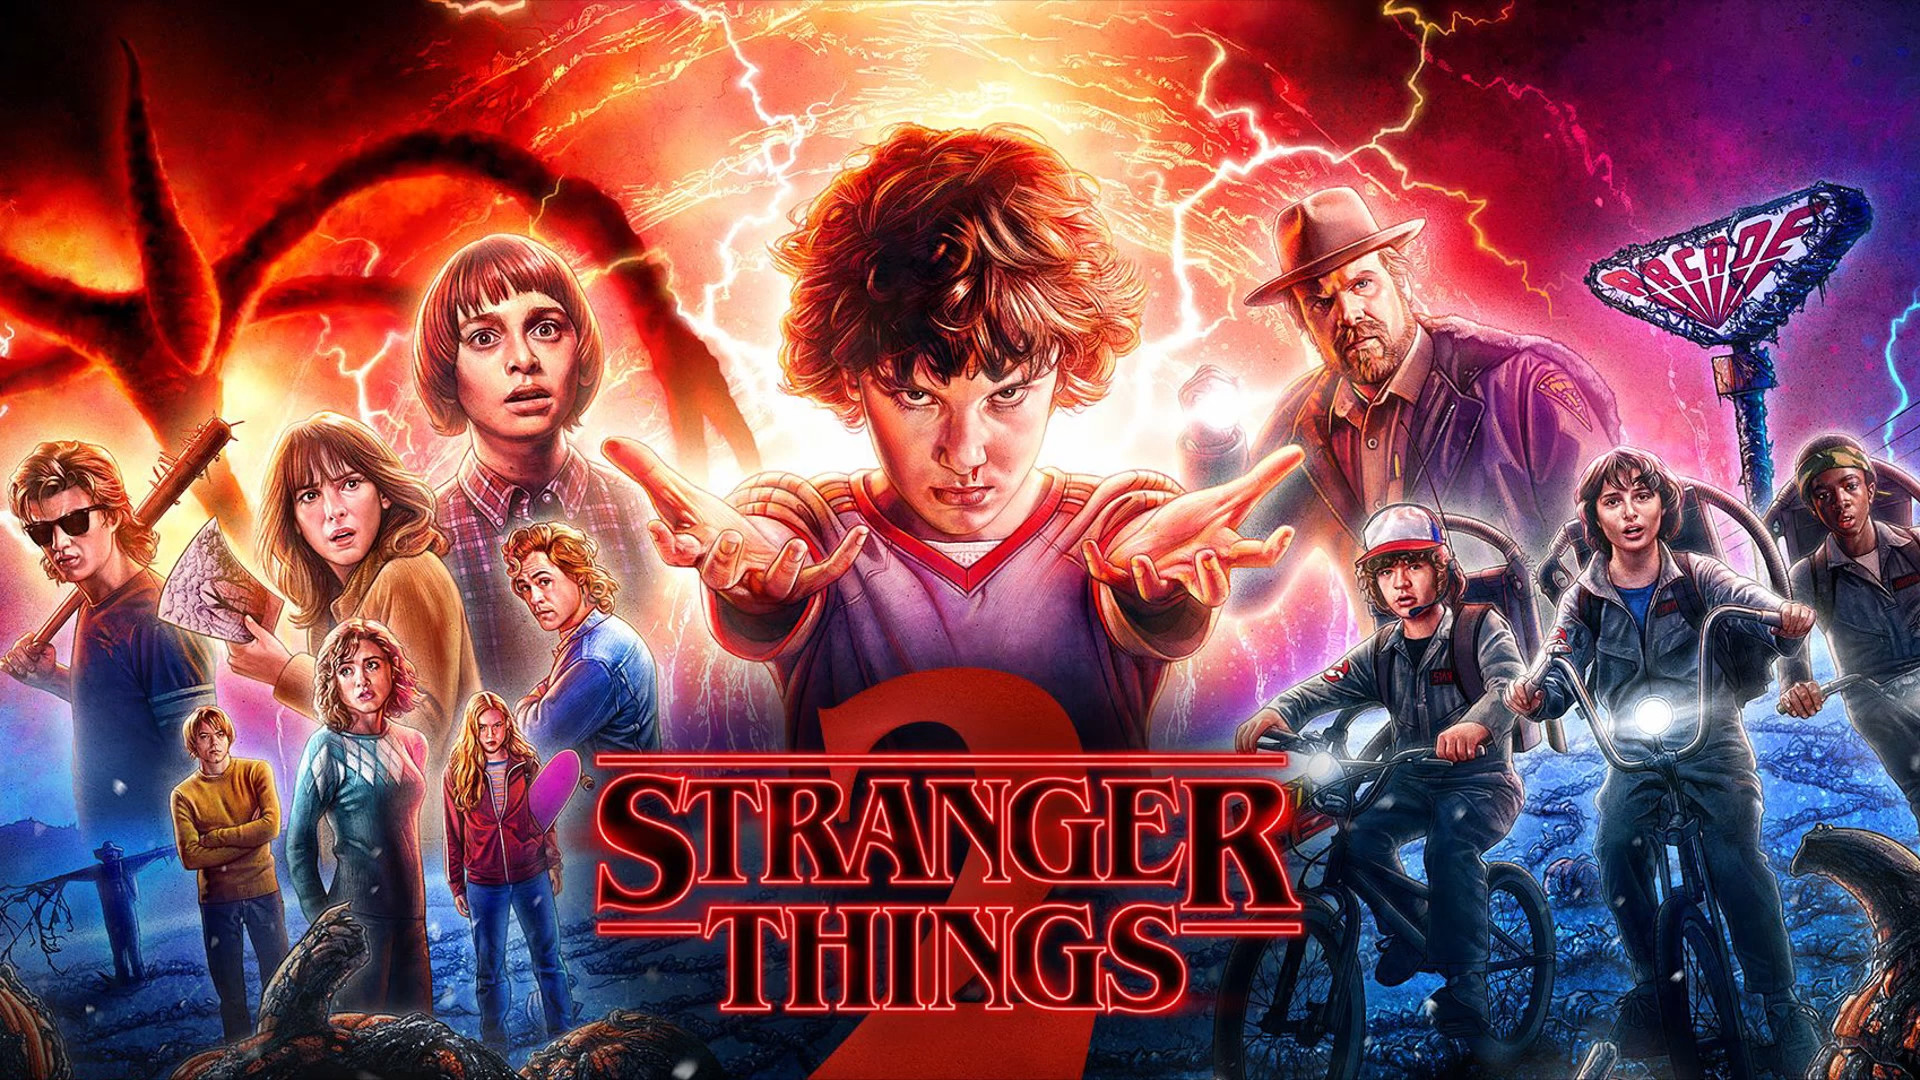 1920x1080 HD Wallpaper | Background Image ID:879599. 1920x1080 TV Show Stranger Things